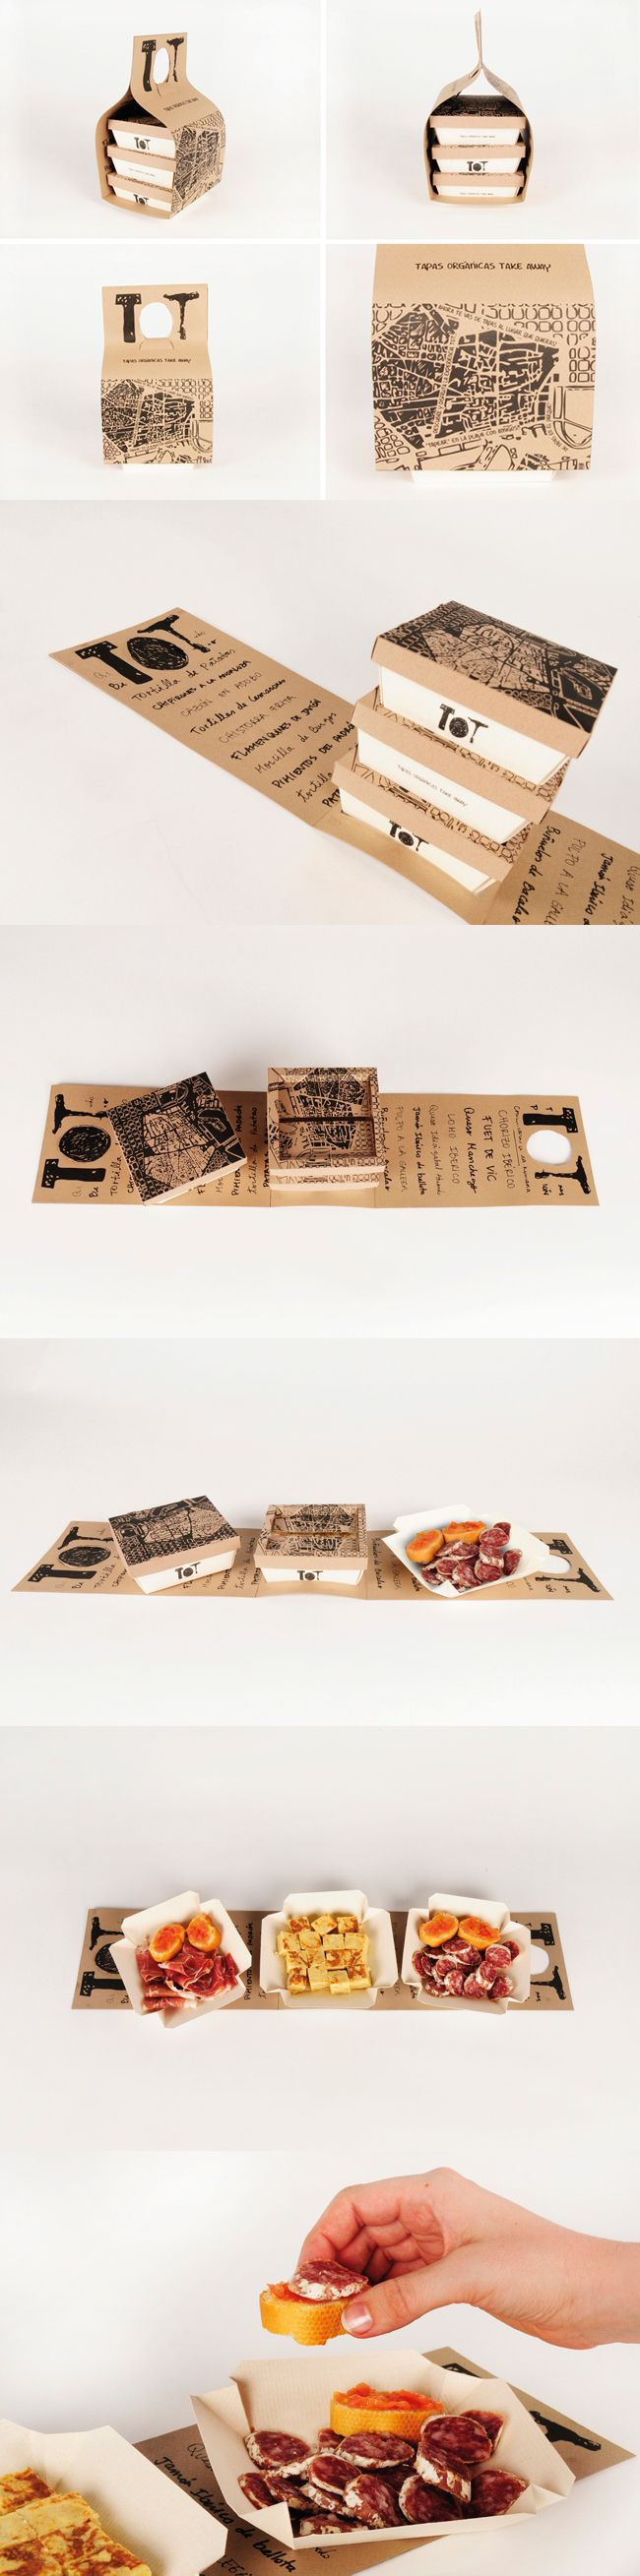 TOT Take-Away (Student Work)  Designed by Gloria Kelly, student of Elisava…